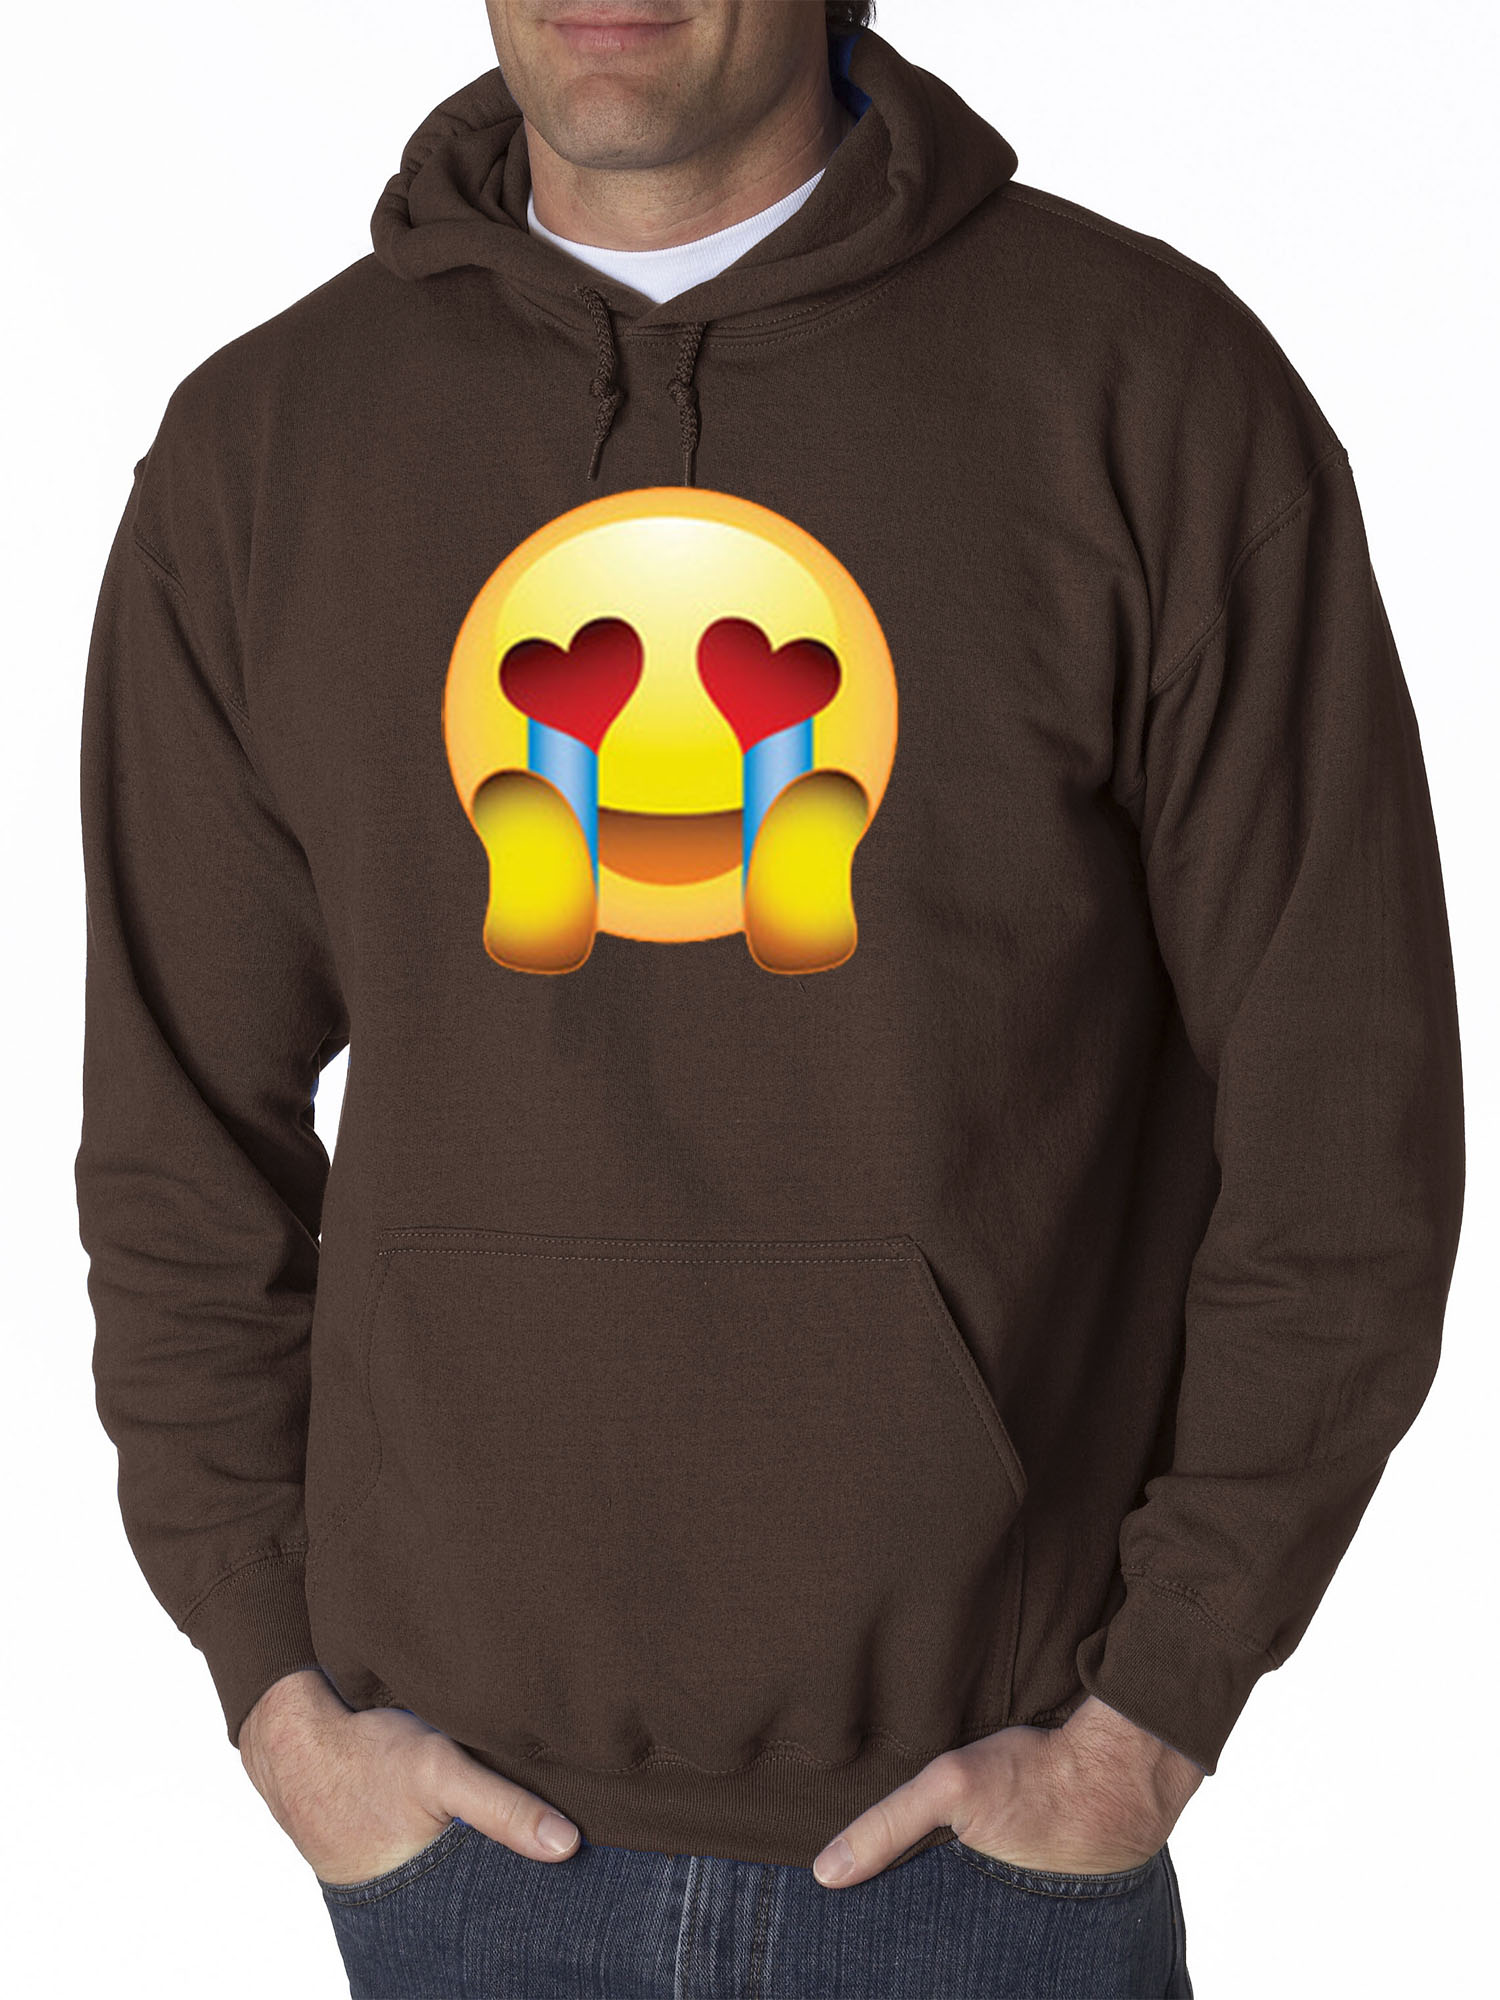 Yellow Smiley Face Hoodie 62